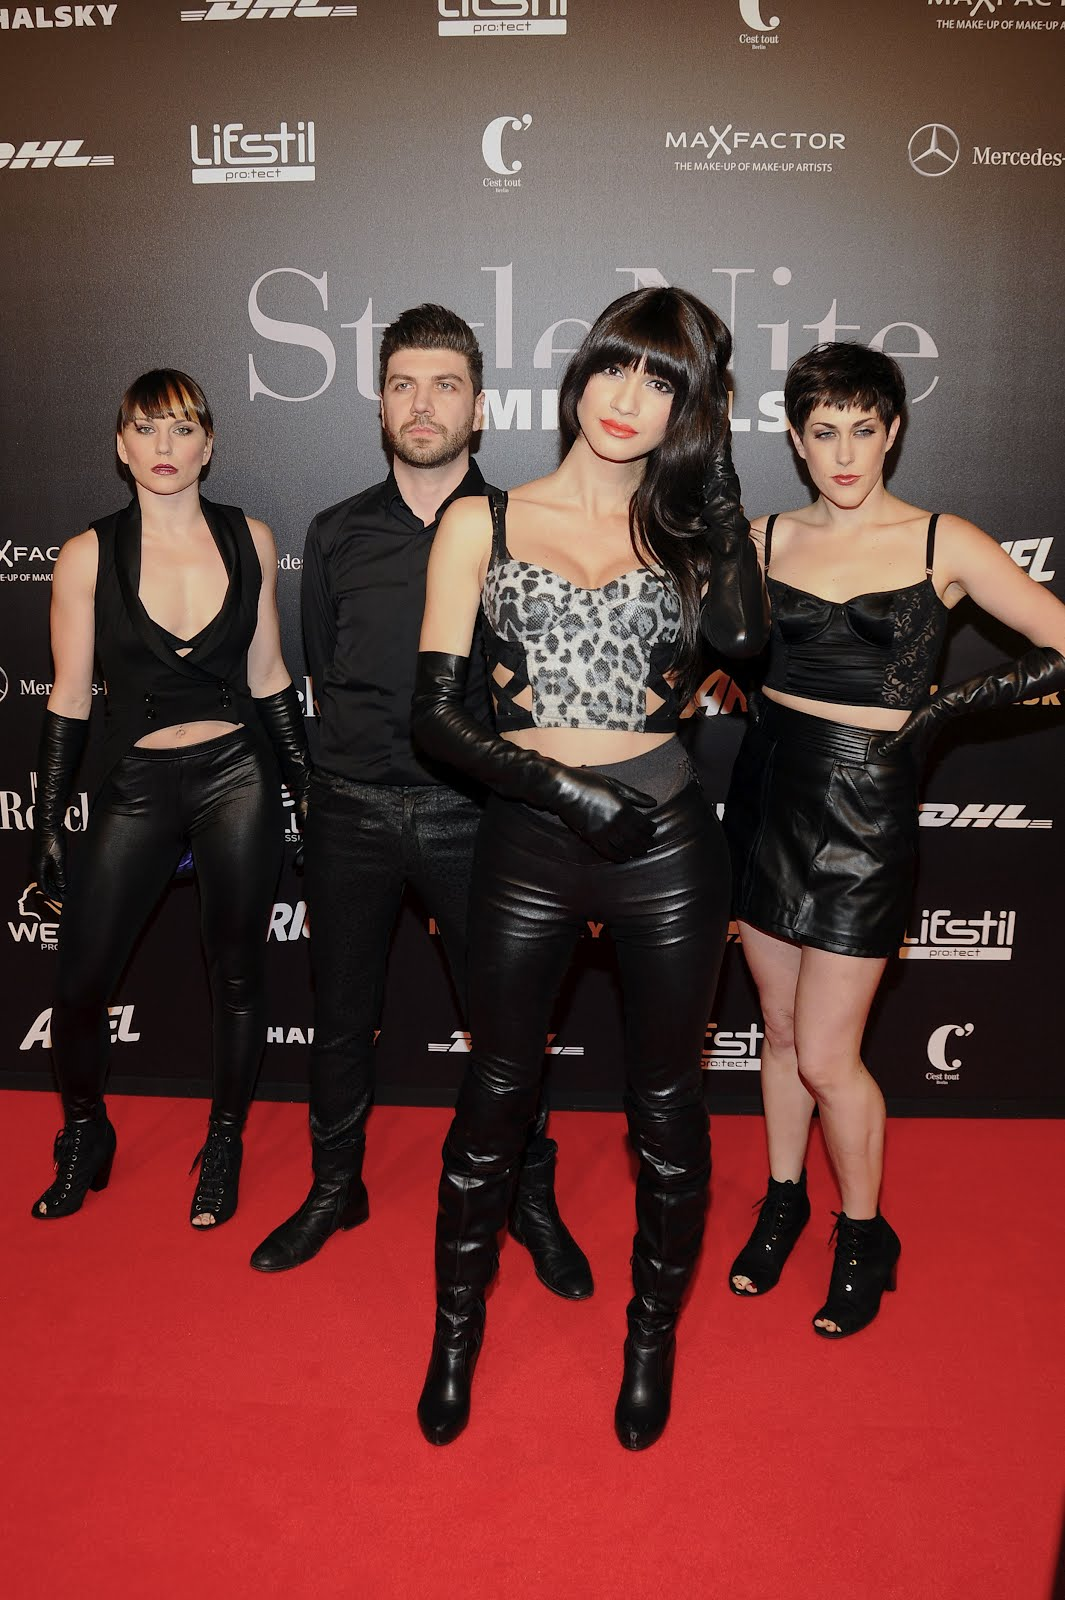 Ladies in leather gloves and boots - Nomi Ruiz In Leather Gloves Leather Boots And Leather Pants In Uhq Bonus With 2 Other Ladies In Leather Gloves And Leather As Well In Read More